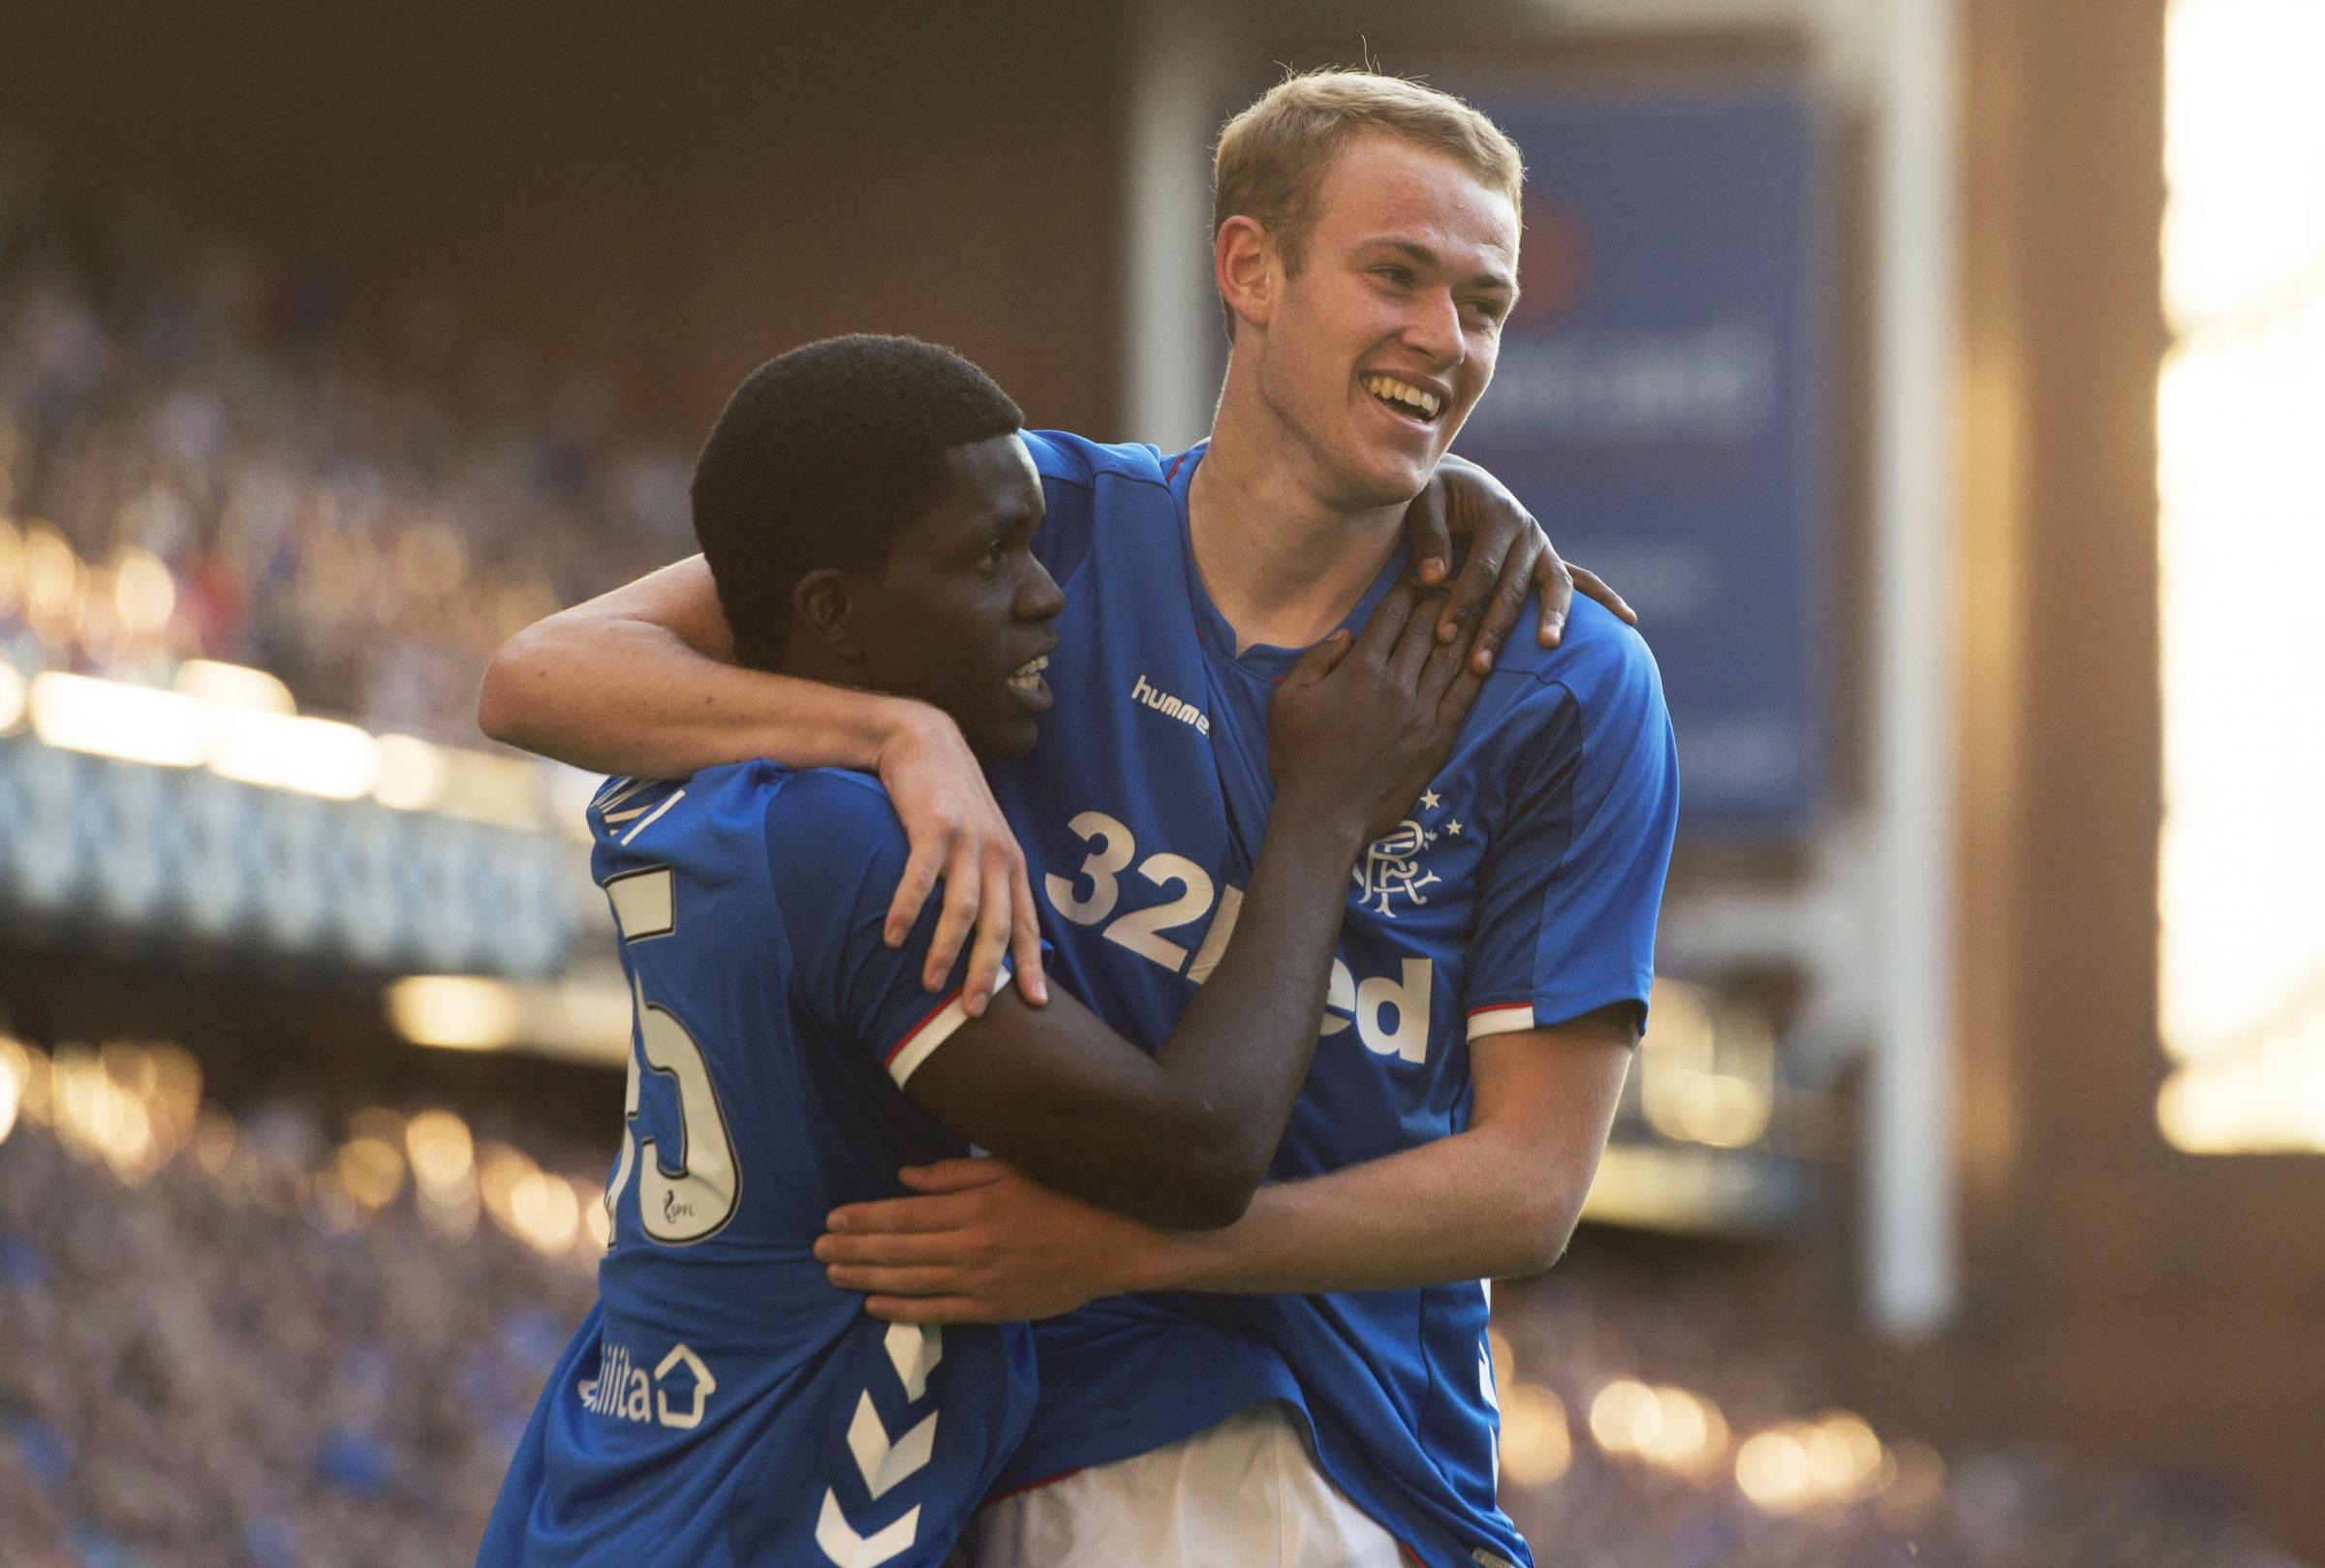 Zak Rudden, right, celebrates scoring against Bury with his fellow Rangers new boy Serge Atakayi.